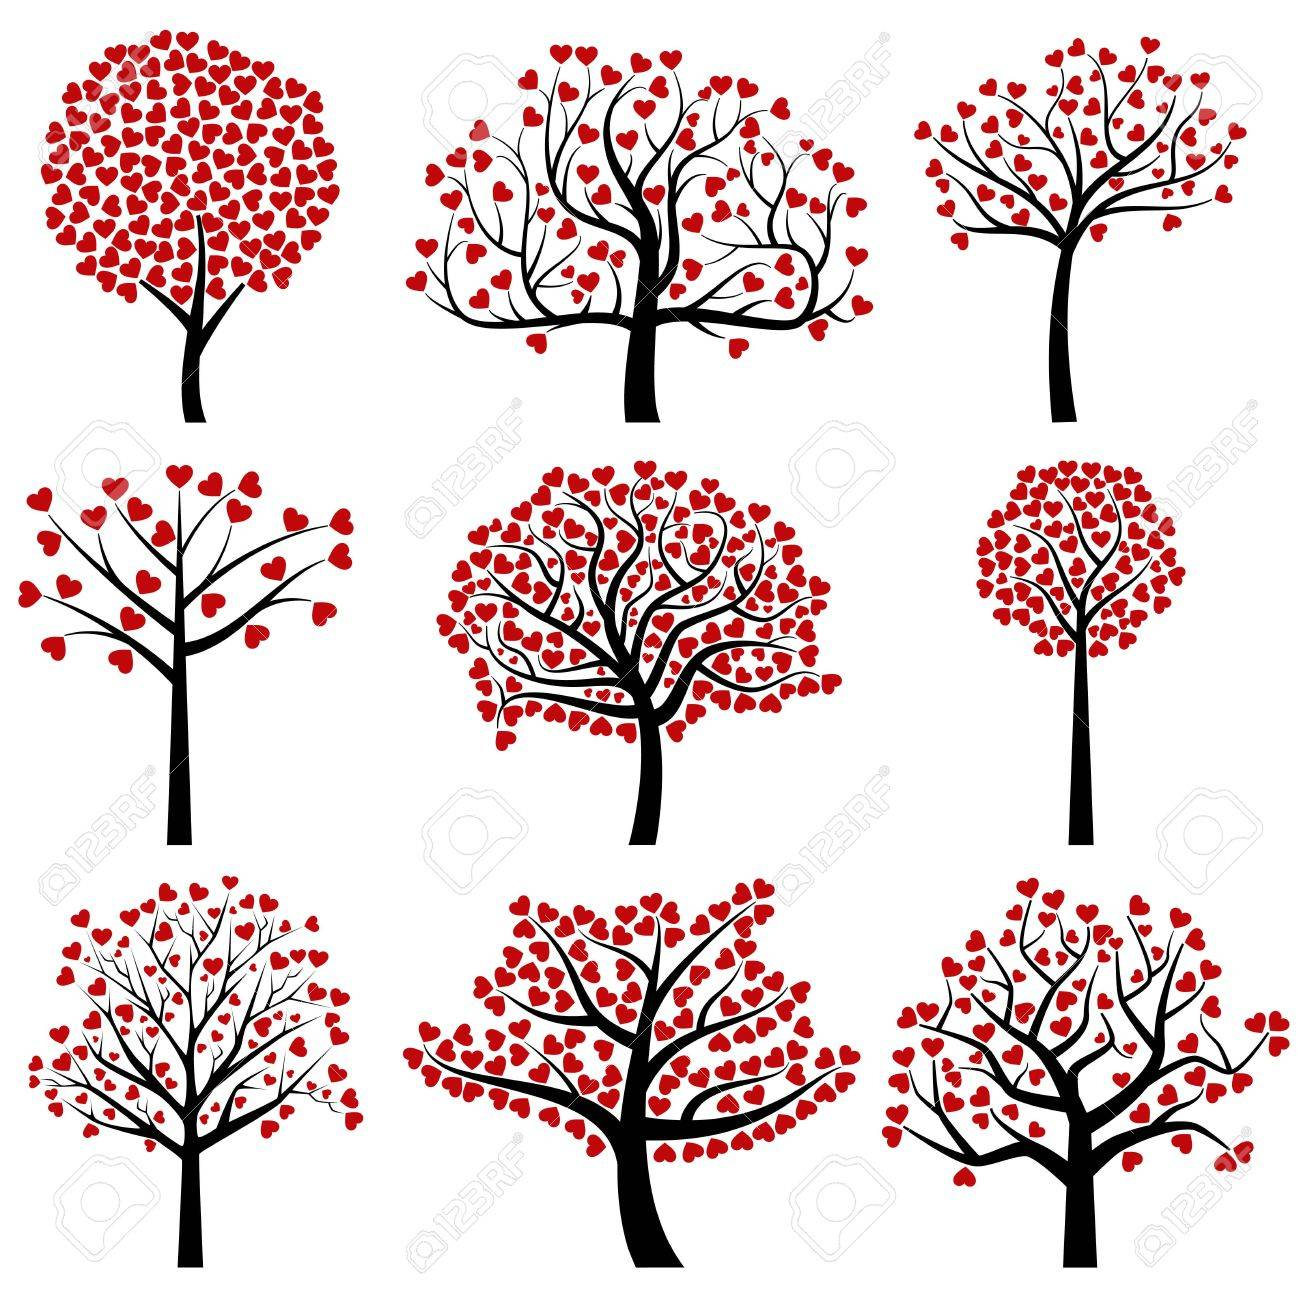 Valentine S Day Tree Silhouettes With Heart Shaped Leaves Vector